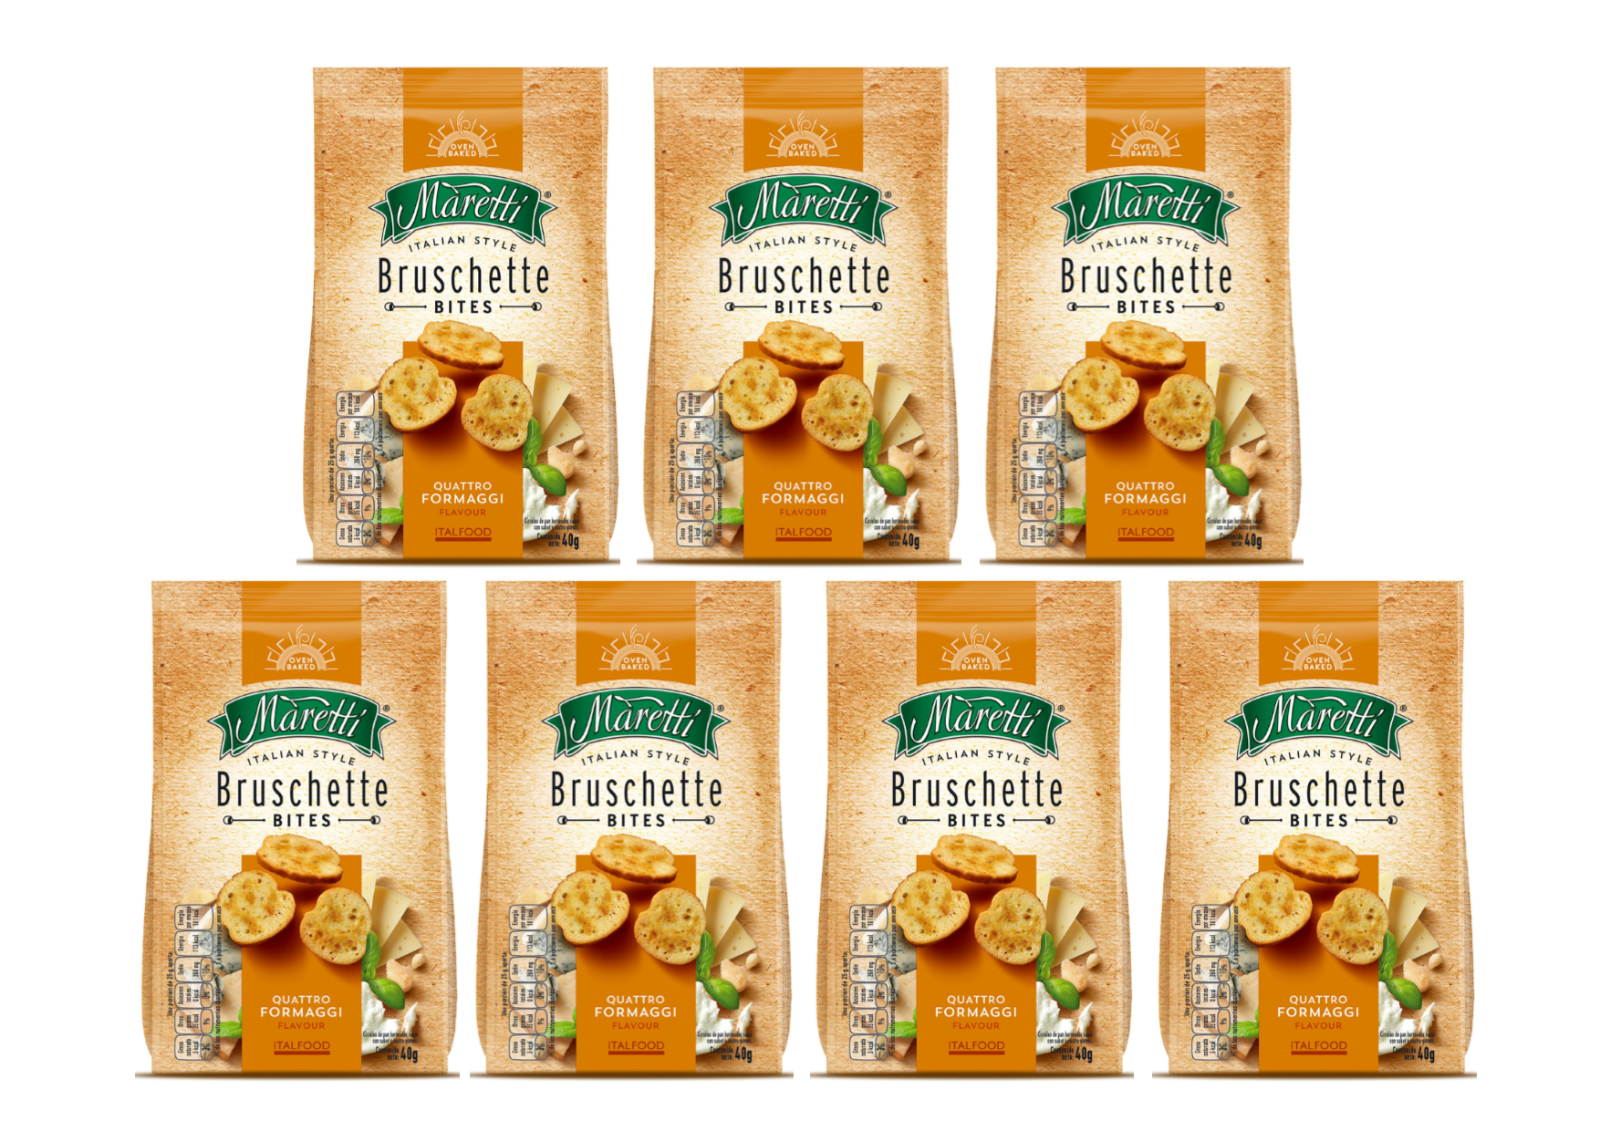 Maretti Bruschette Mix Cheese  flavour 70g pack of 7